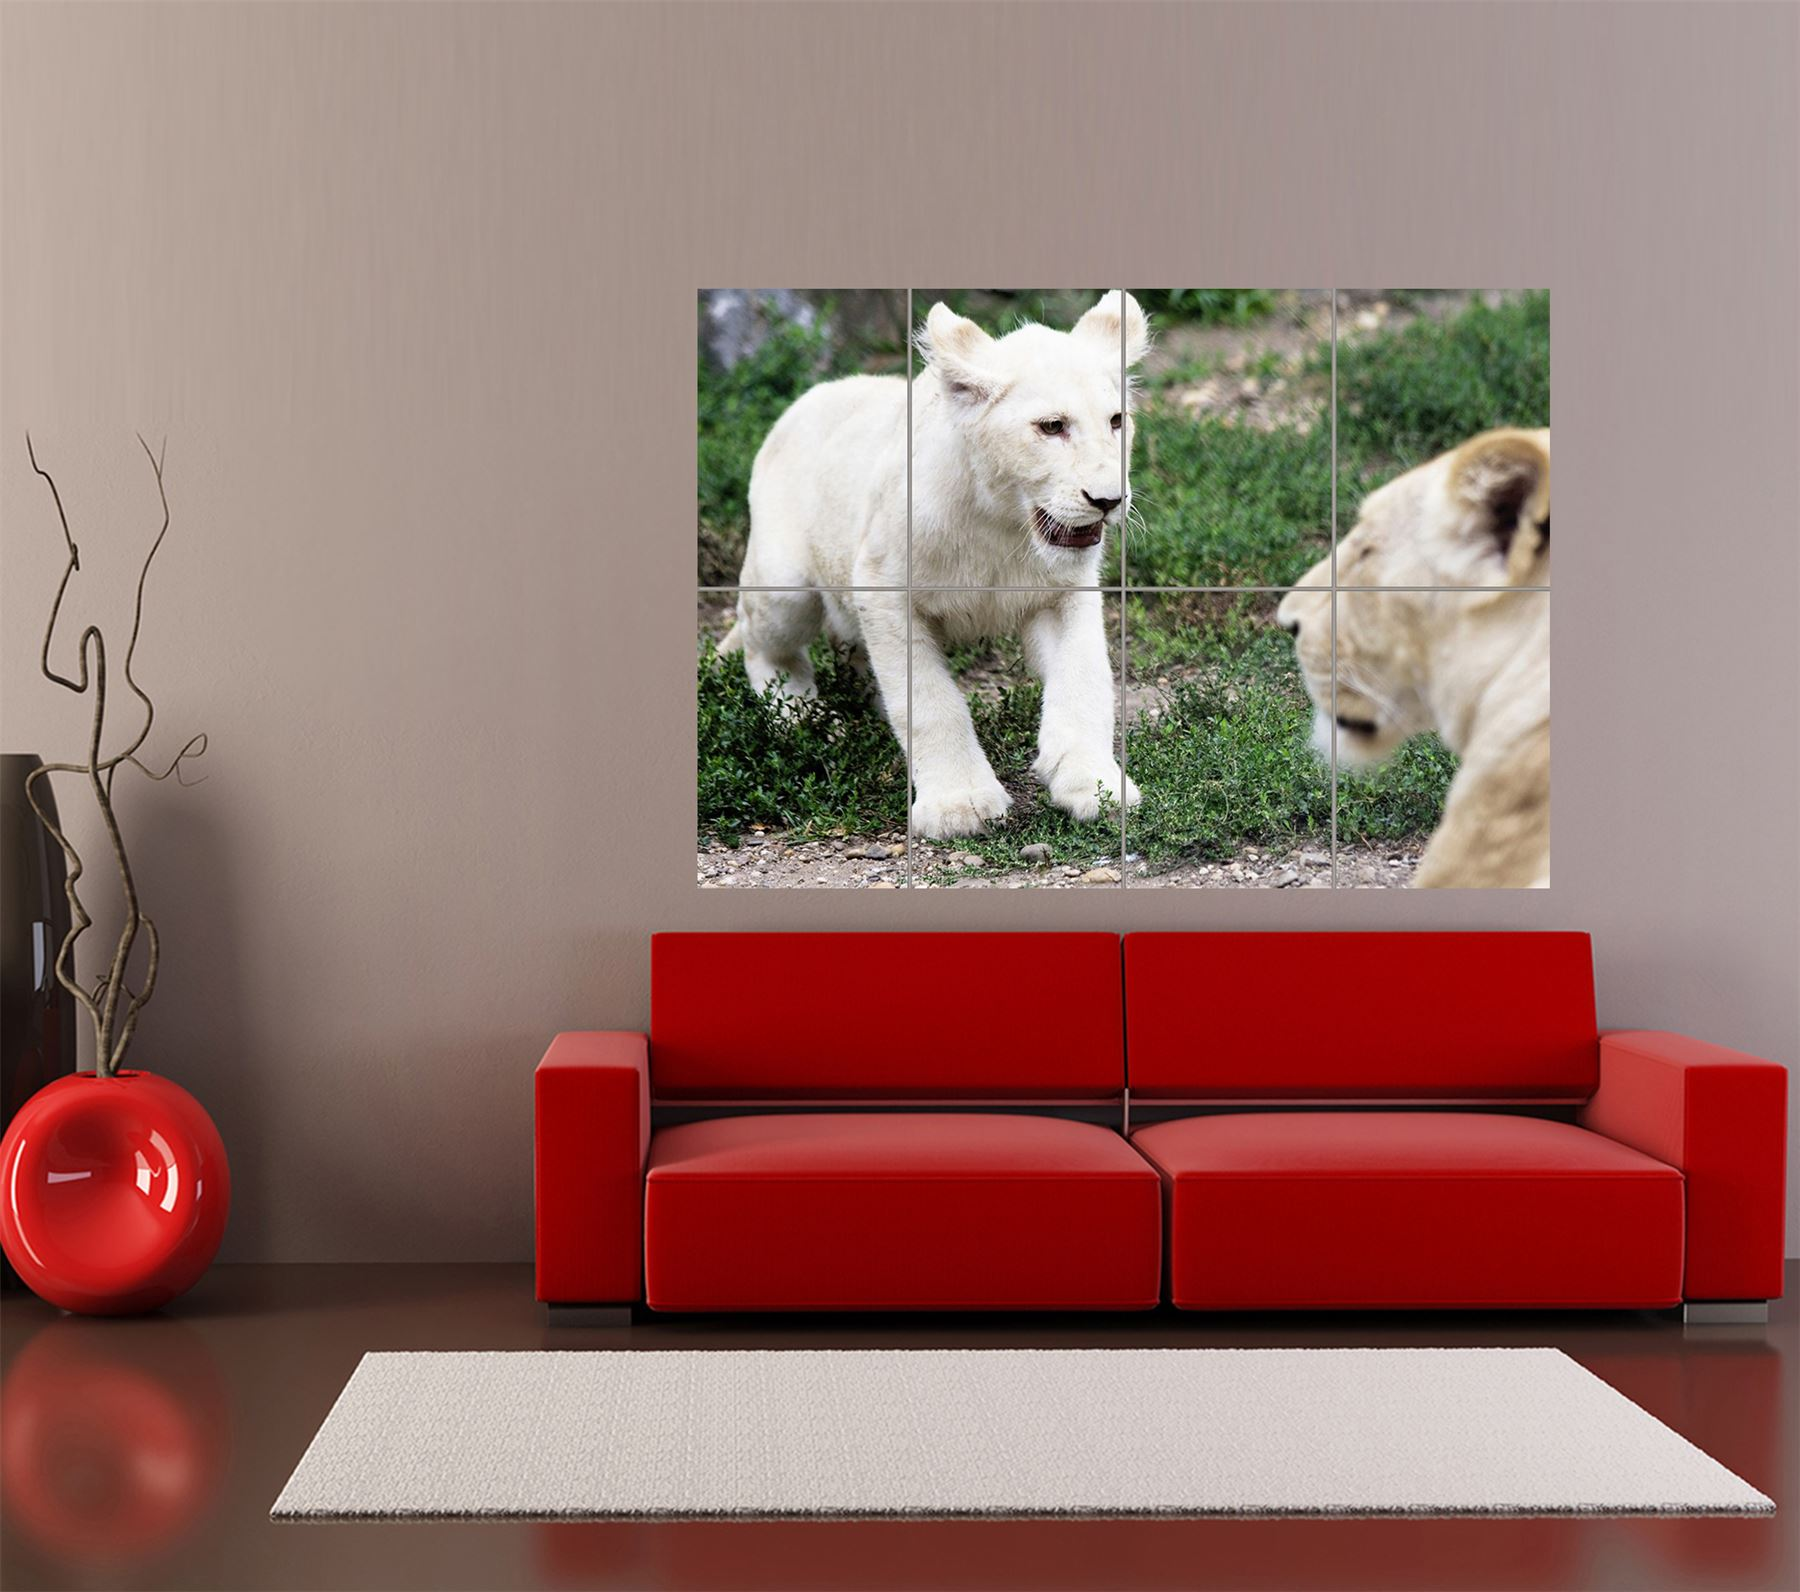 WHITE-LION-CUB-ANIMAL-CAT-PHOTOGRAPHY-GIANT-ART-PRINT-HOME-DECOR-POSTER-OZ2957